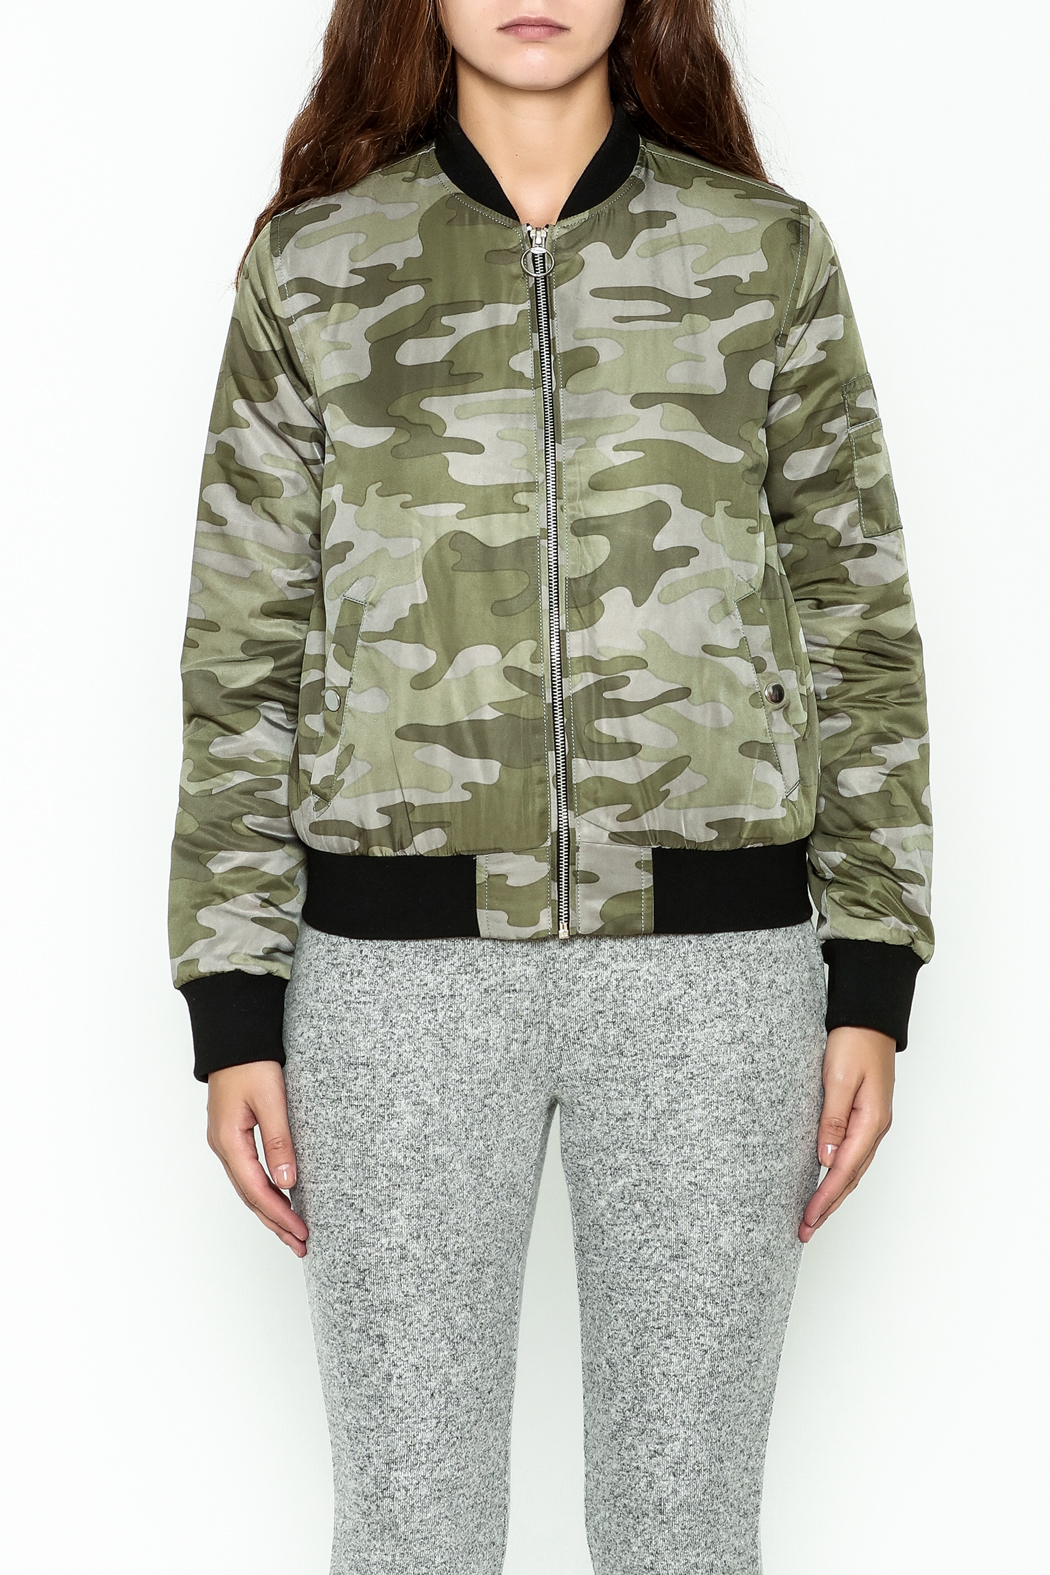 Others Follow  Camo Bomber Jacket - Front Full Image